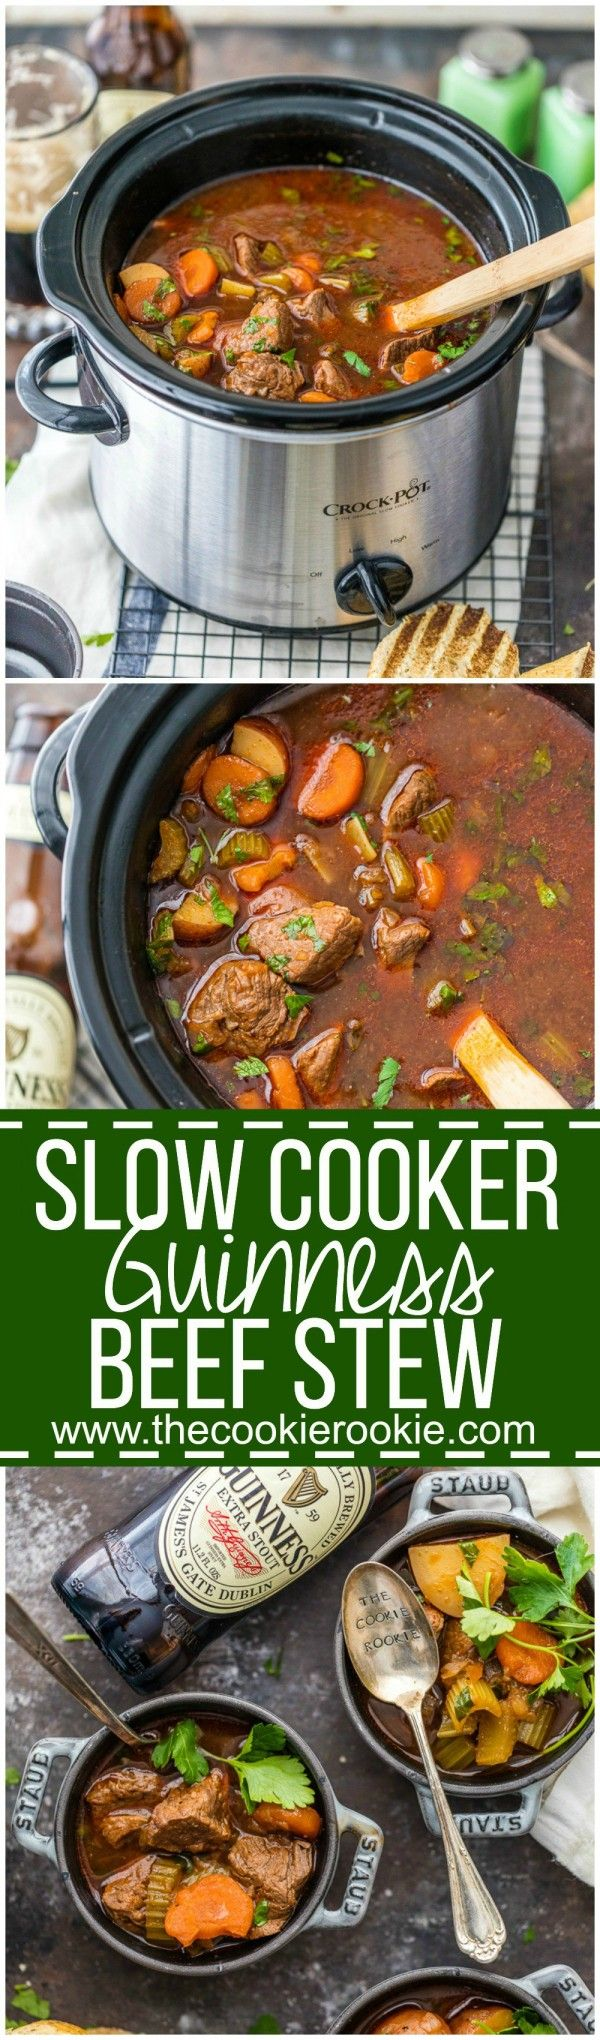 Slow Cooker Guinness Beef Stew is a favorite Irish recipe in our house! We make this crockpot beef soup for St. Patrick's Day and can't get enough! The perfect slow cooker comfort food recipe for st patricks day!